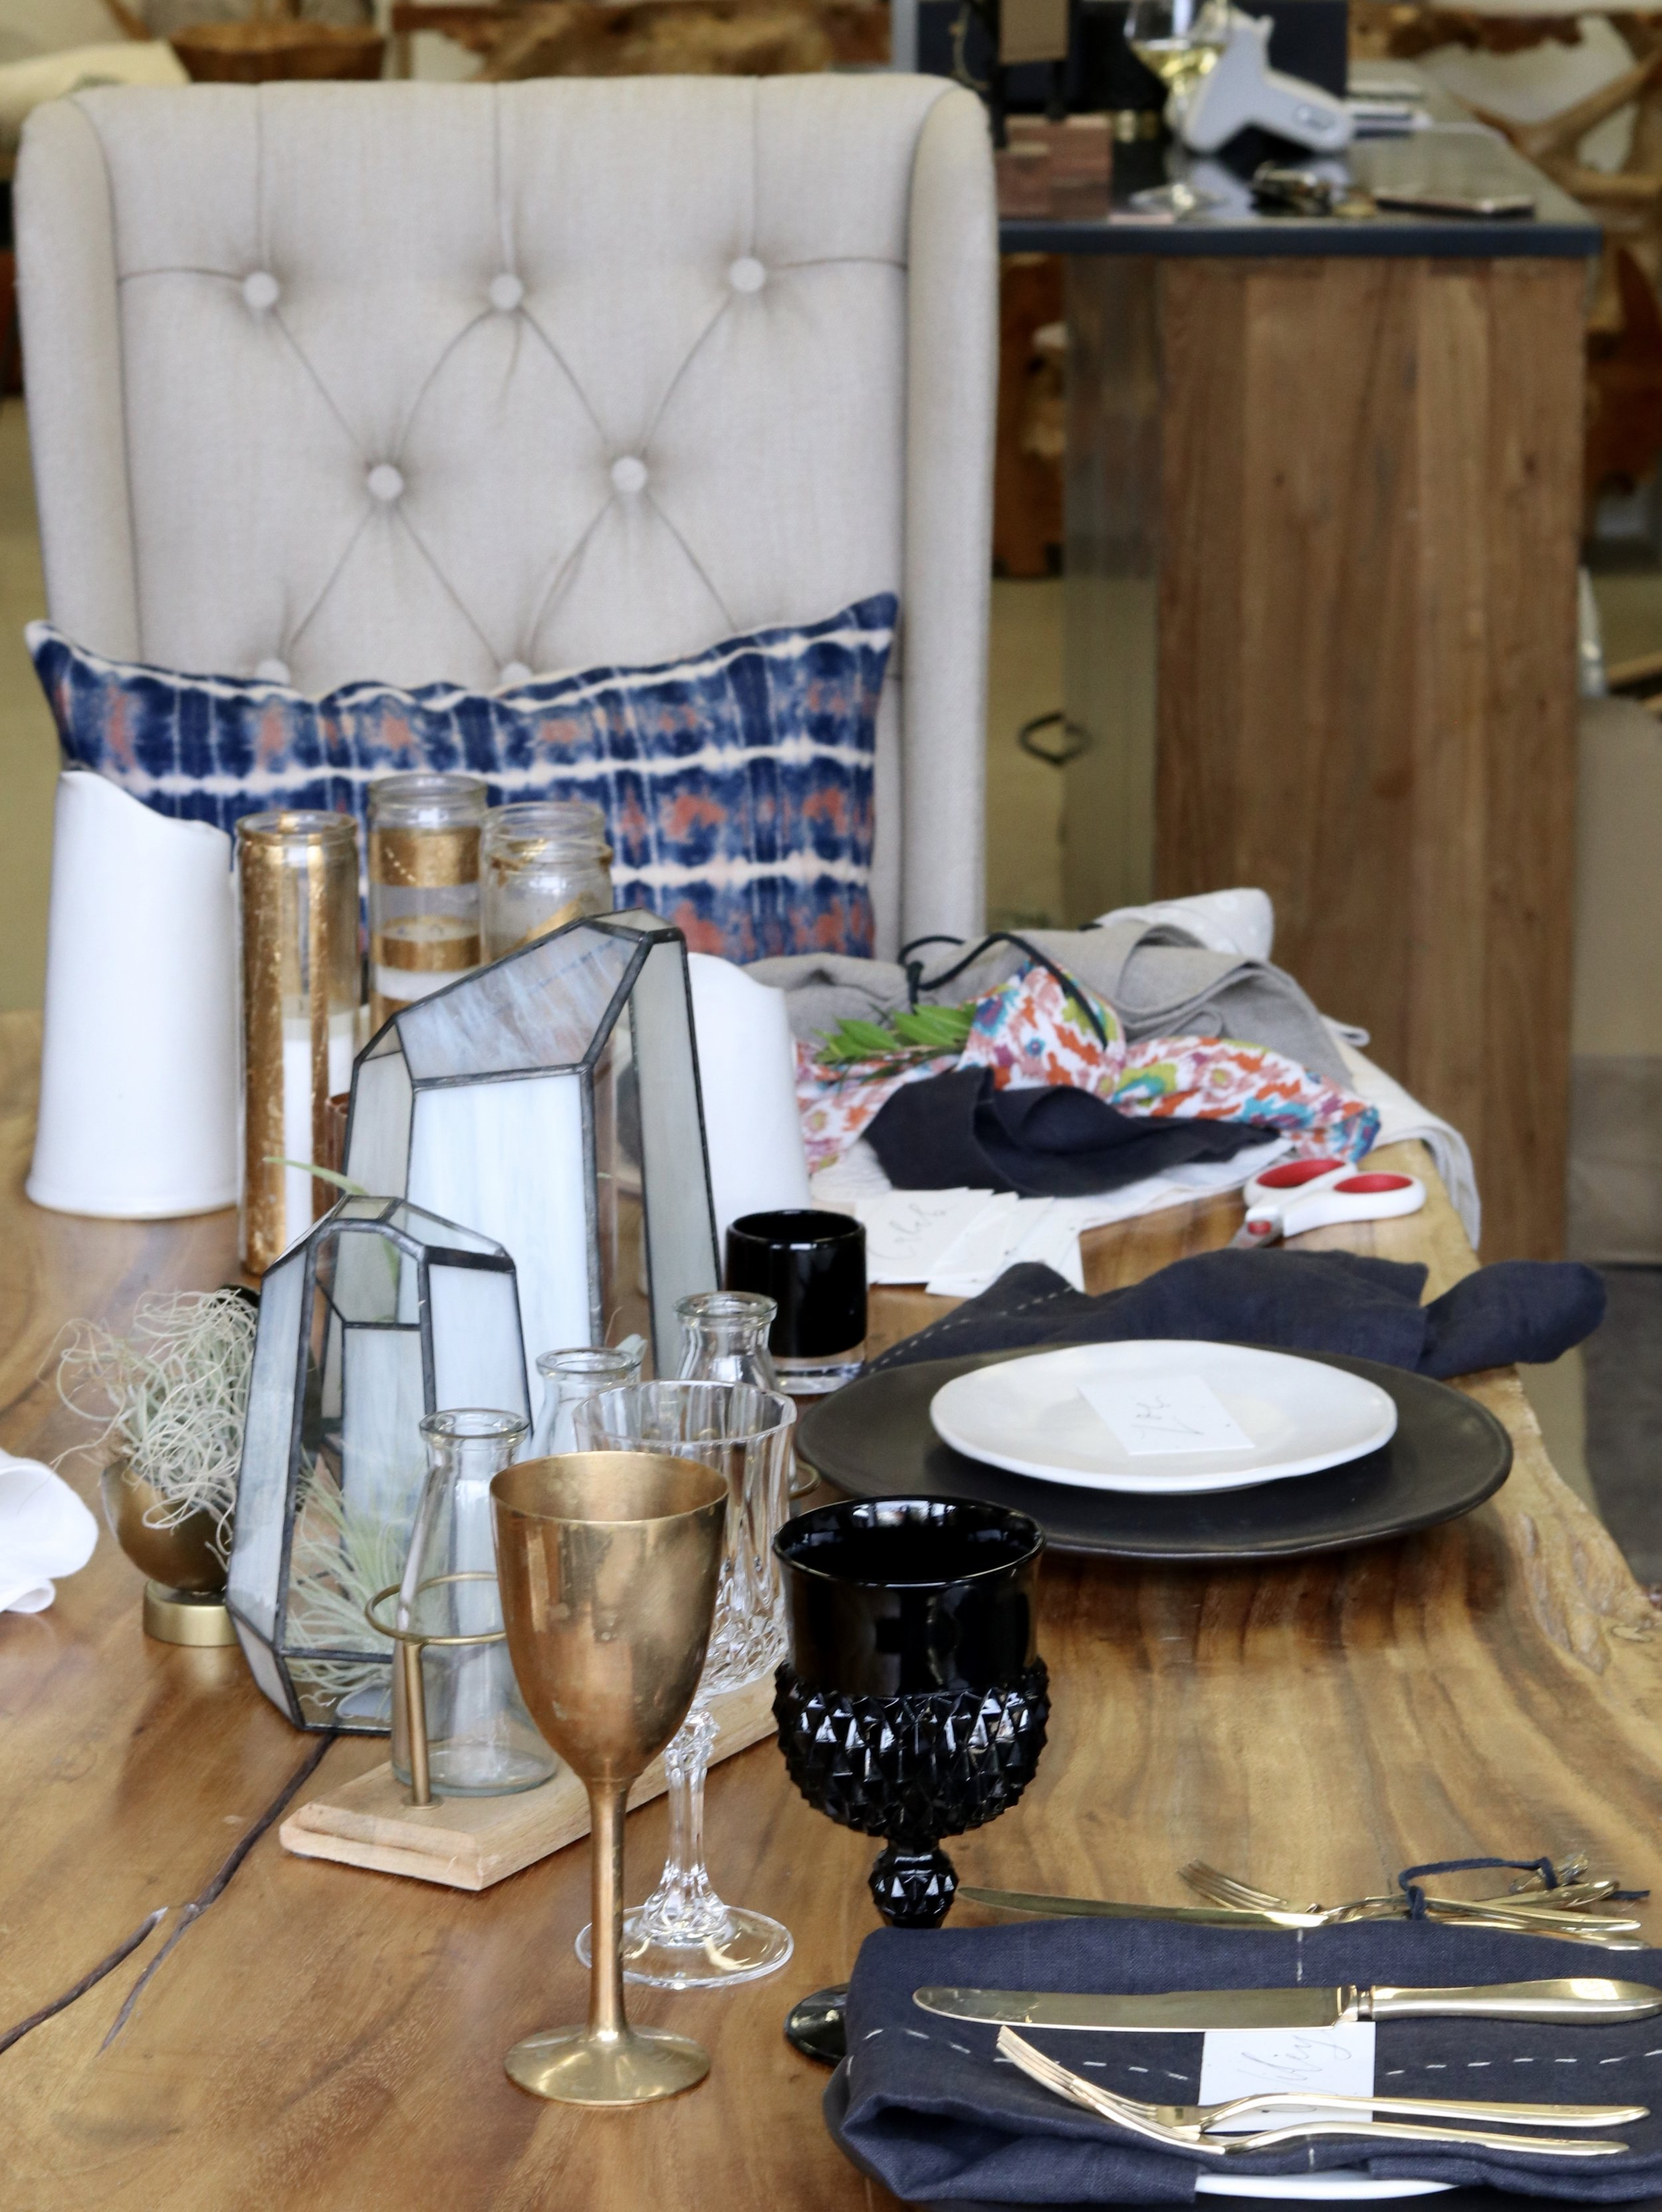 Ceramic plates from South Africa (available at Millworks)  pared with vintage glassware and silverware from Otis & Pearl, and FOLD signature napkins in charcoal linen.